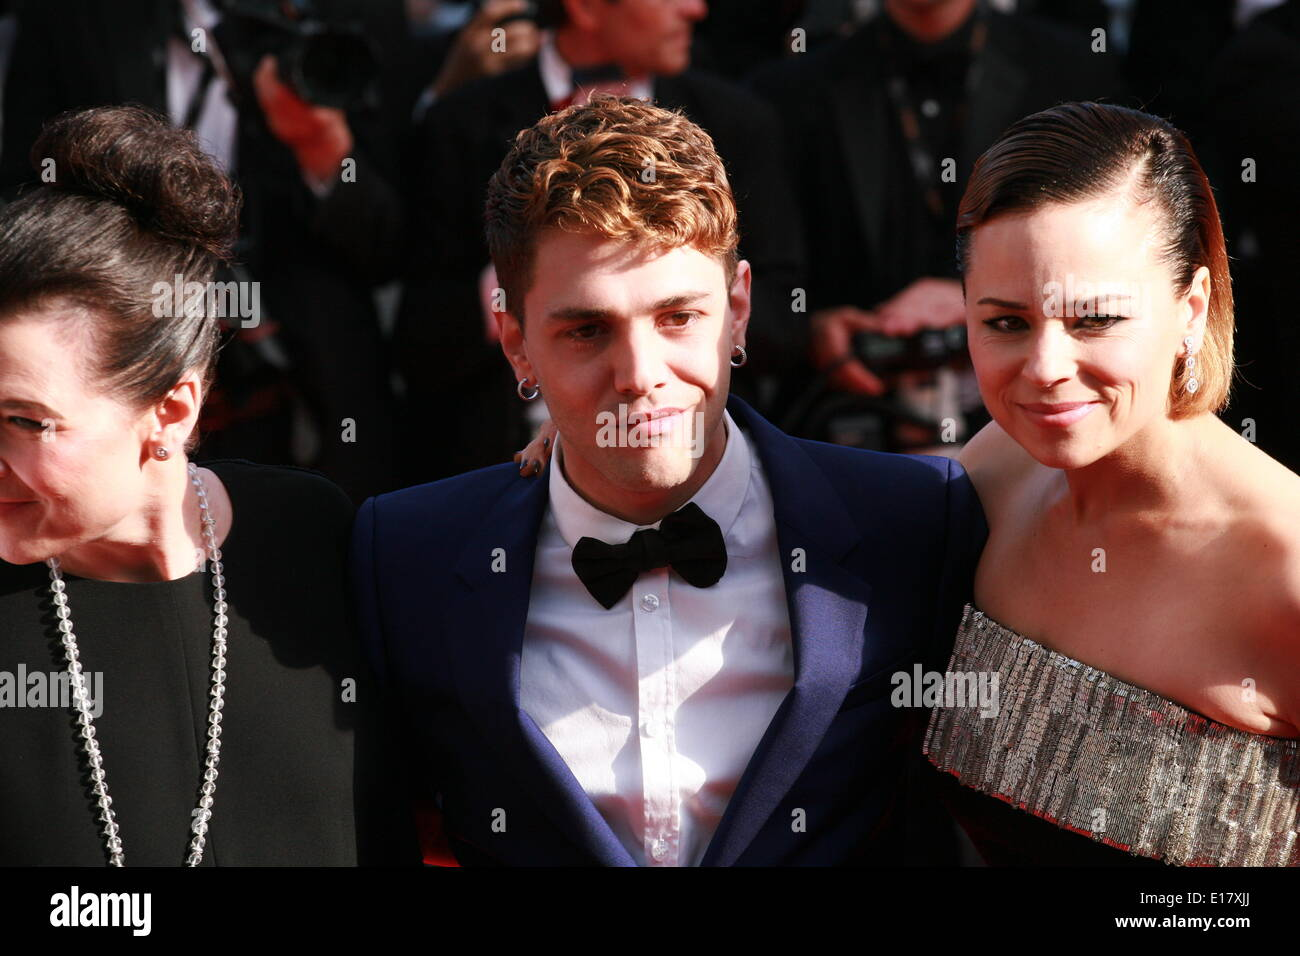 Anne Dorval. director Xavier Dolan and Suzanne Clement at the Palme d'Or  Closing Awards Ceremony red carpet at the 67th Cannes Film Festival France. Saturday 24th May 2014 in Cannes Film Festival, France. - Stock Image